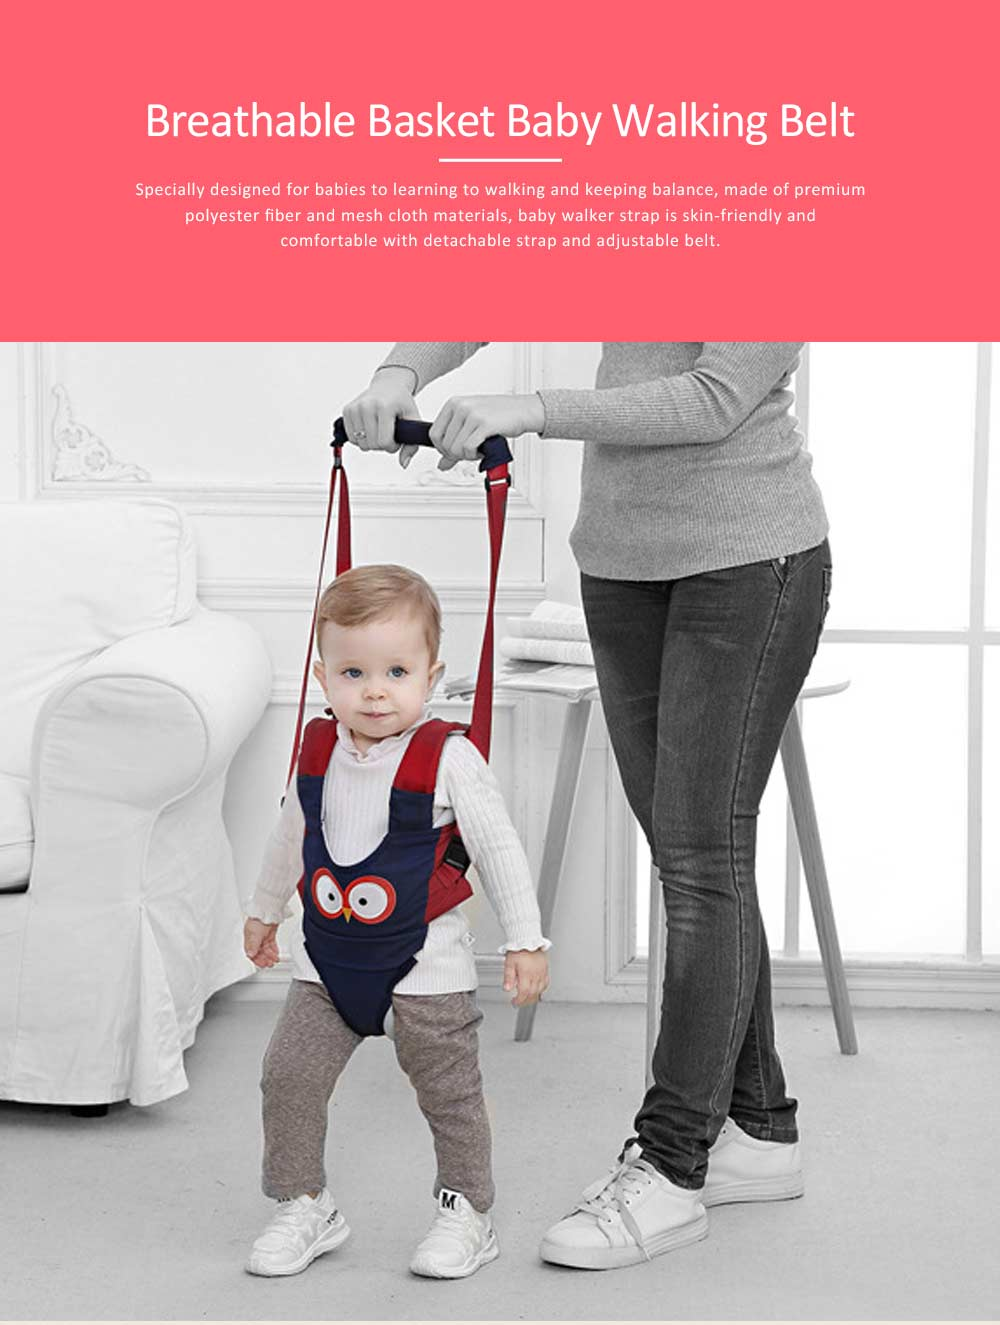 Handheld Baby Walker for Toddler, Breathable Basket Baby Walking Belt with Detachable Crotch for Infant 0